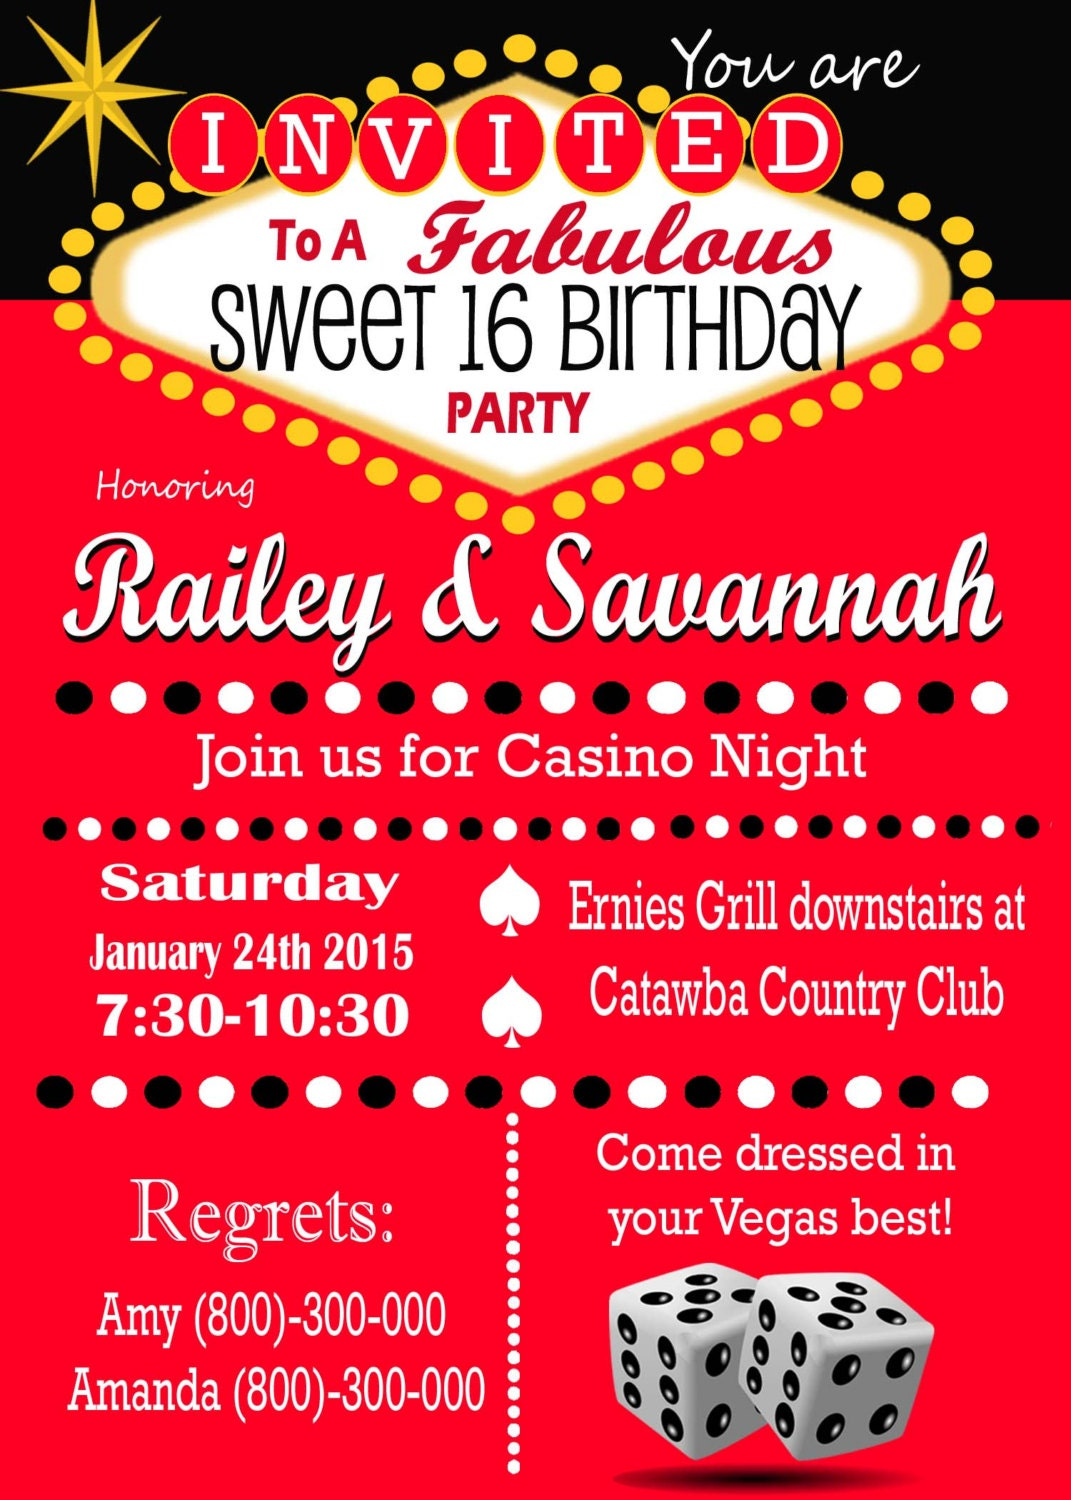 Casino Theme Party Las Vegas Sweet 16 Party Invitation. Retro | Etsy